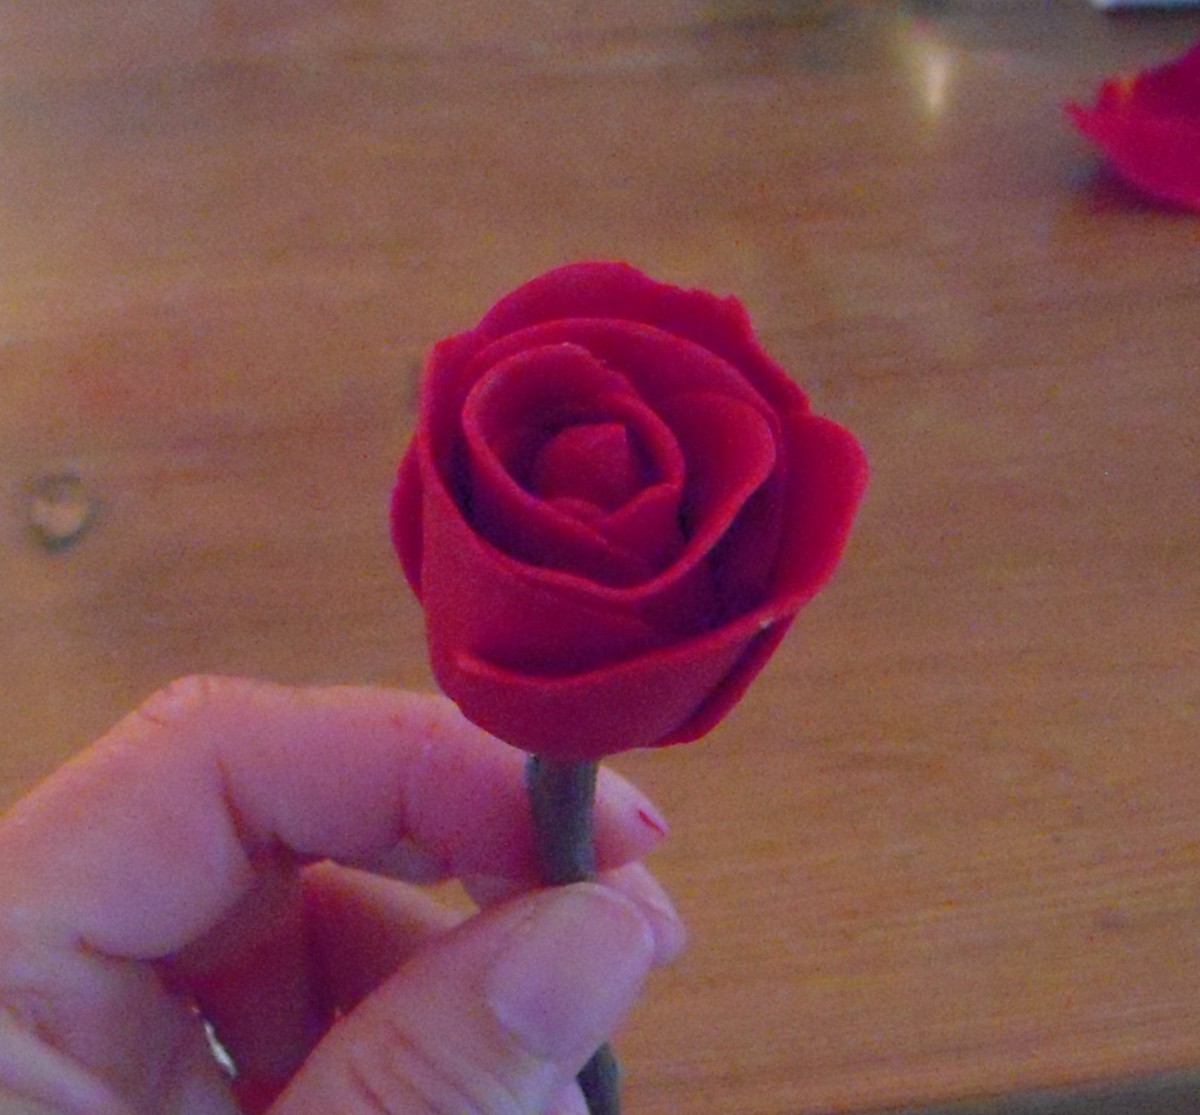 Rose, made with Sculpey clay